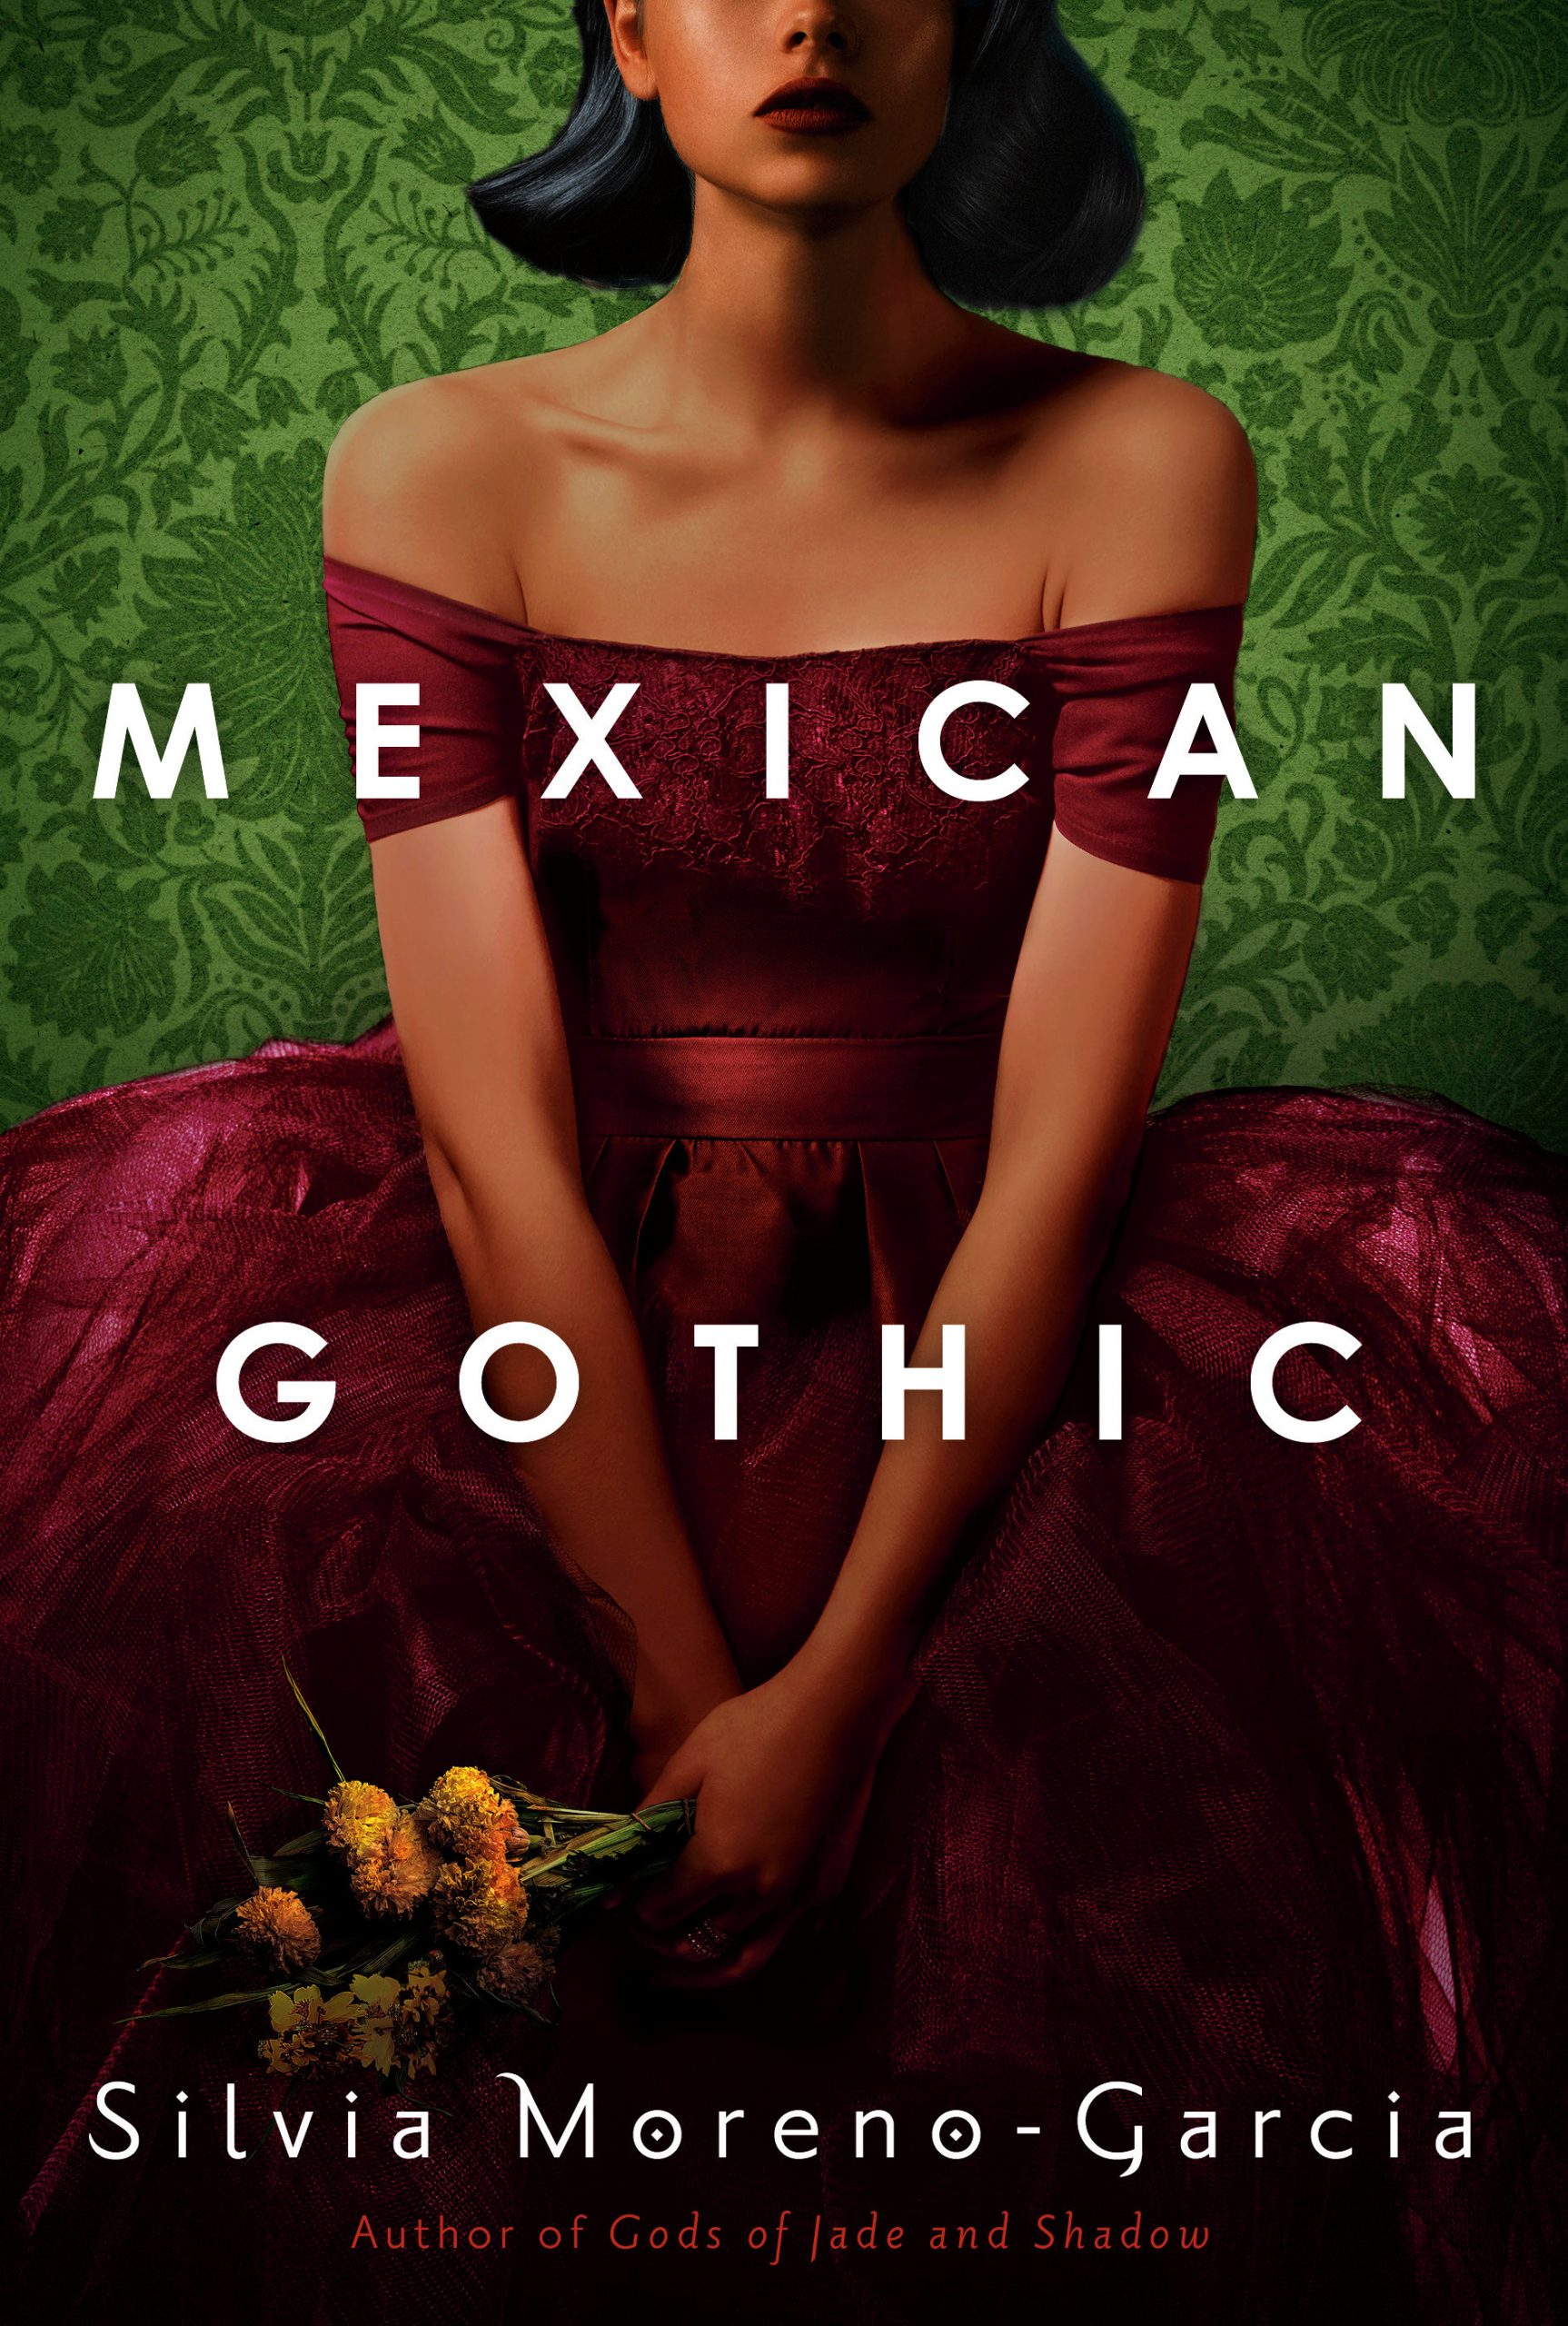 SFFWorld Countdown to Hallowe'en 2020 – Mexican Gothic by Silvia Moreno-Garcia